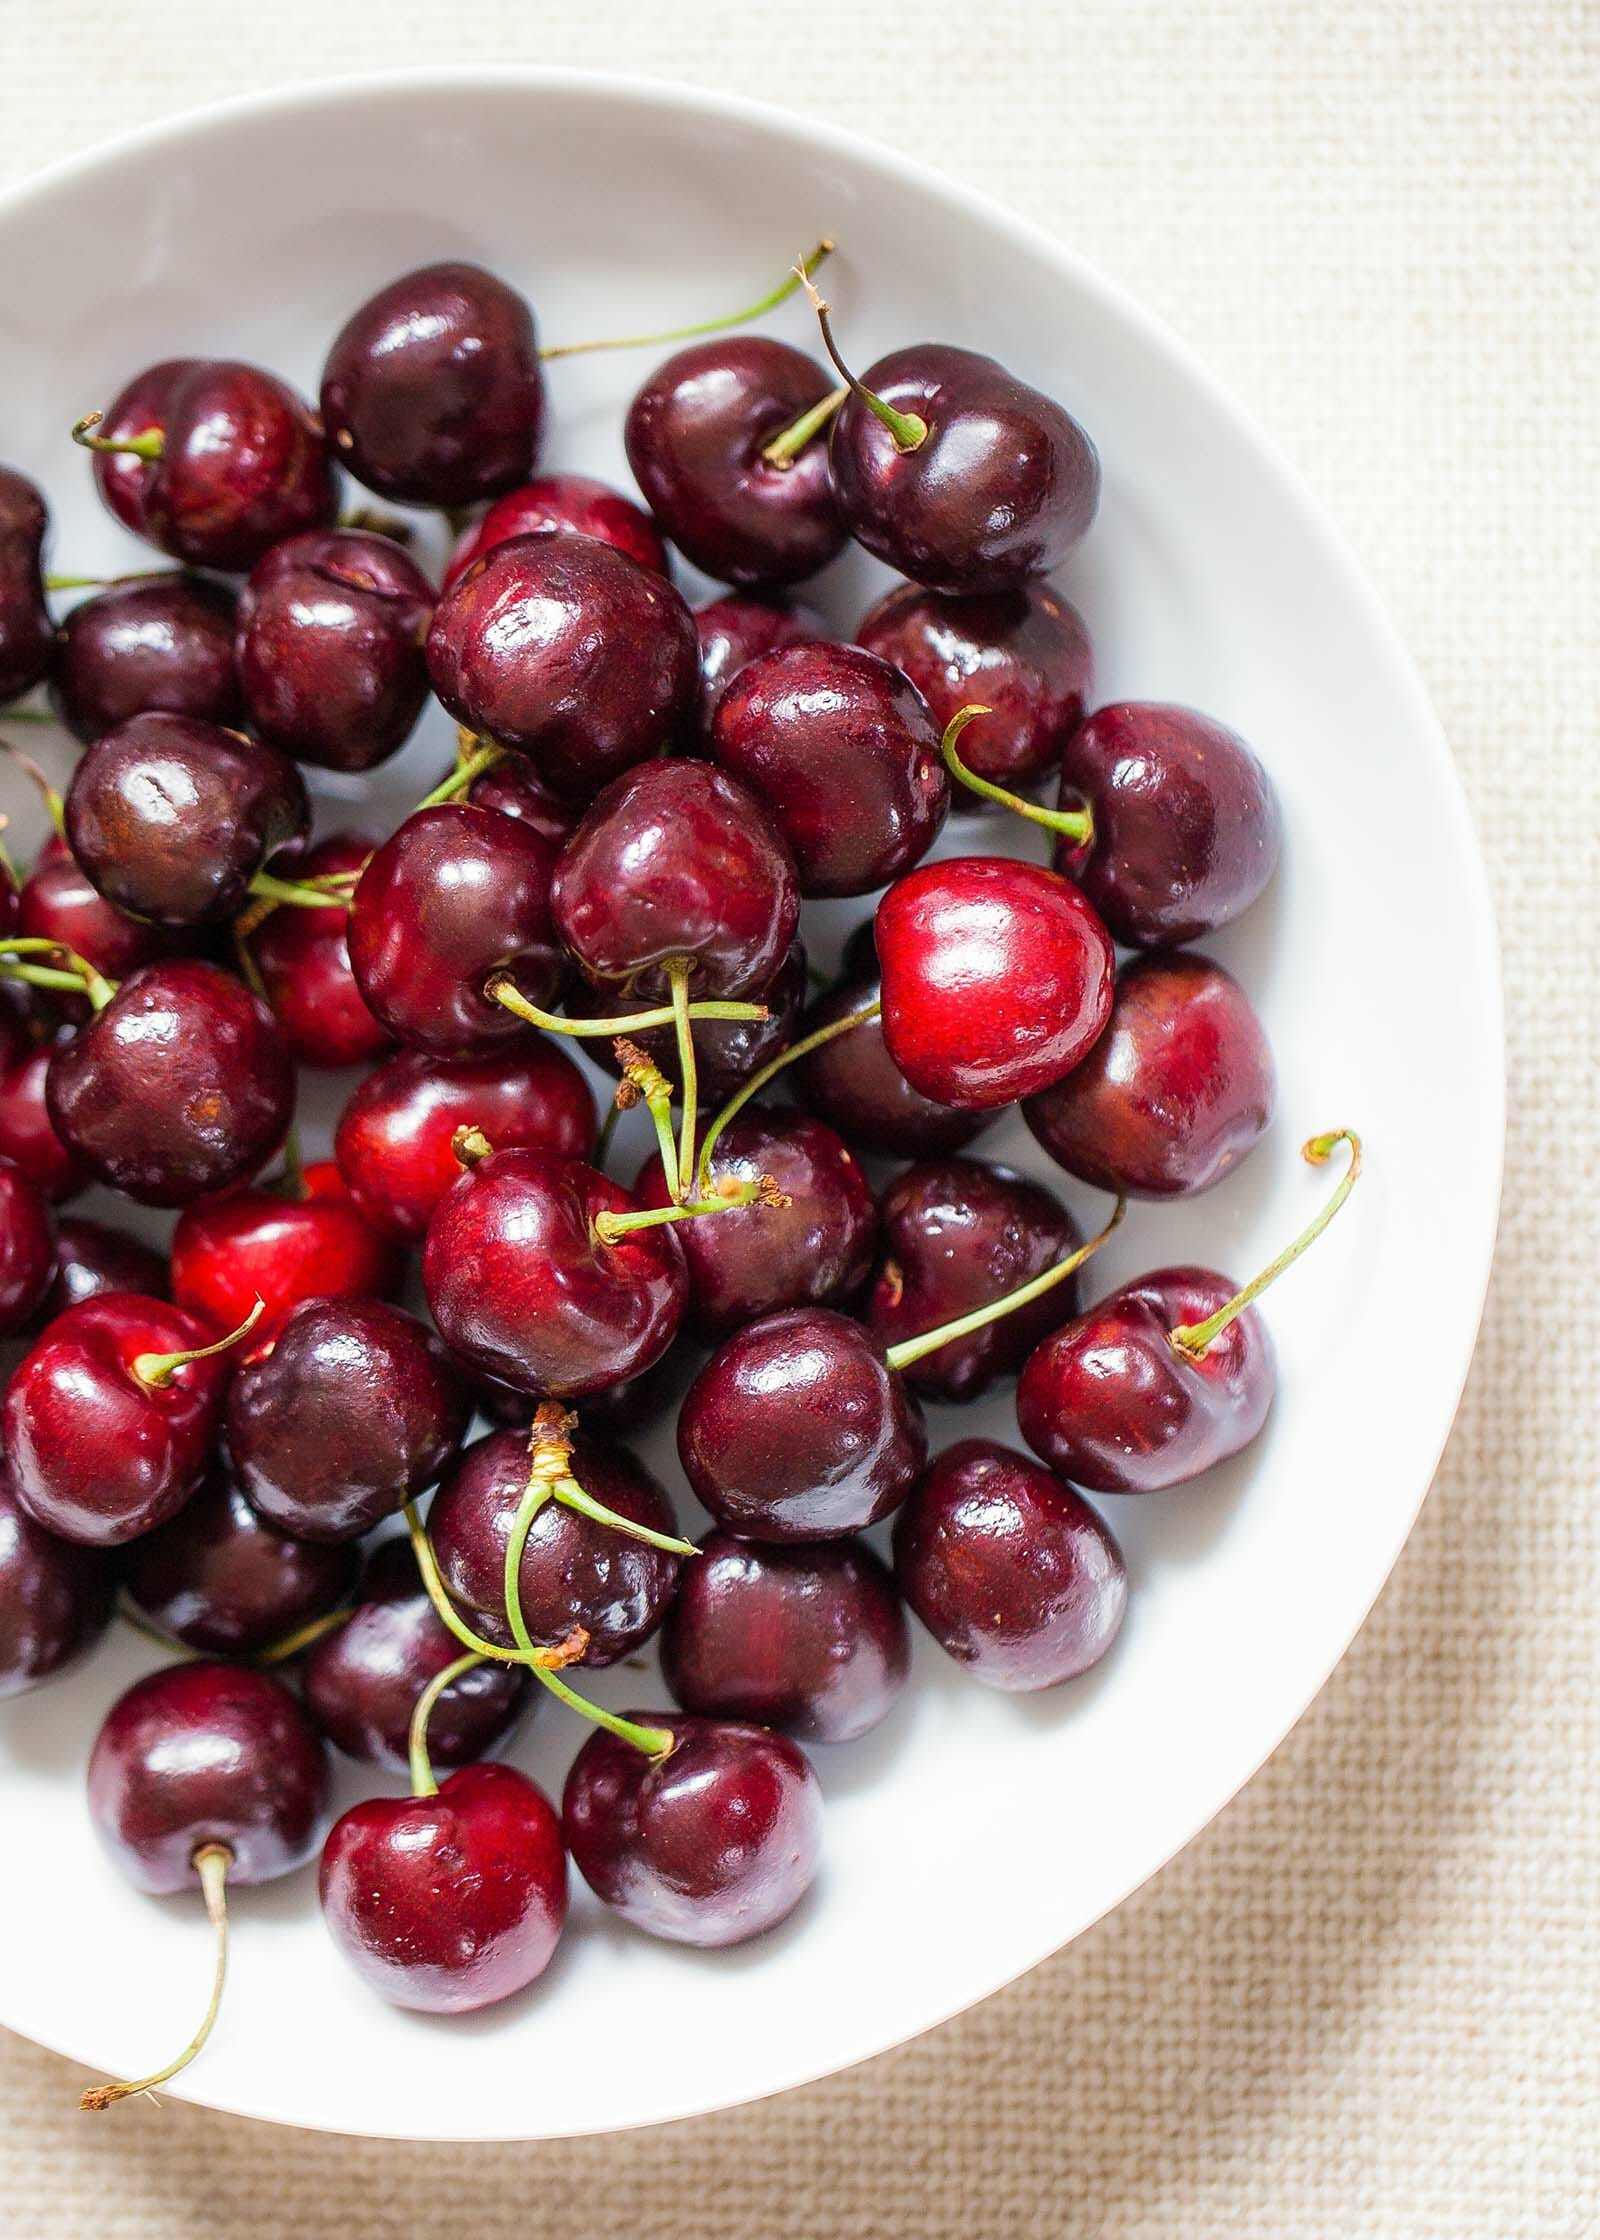 4 Ways to Pit Cherries If You Don't Have a Cherry Pitter